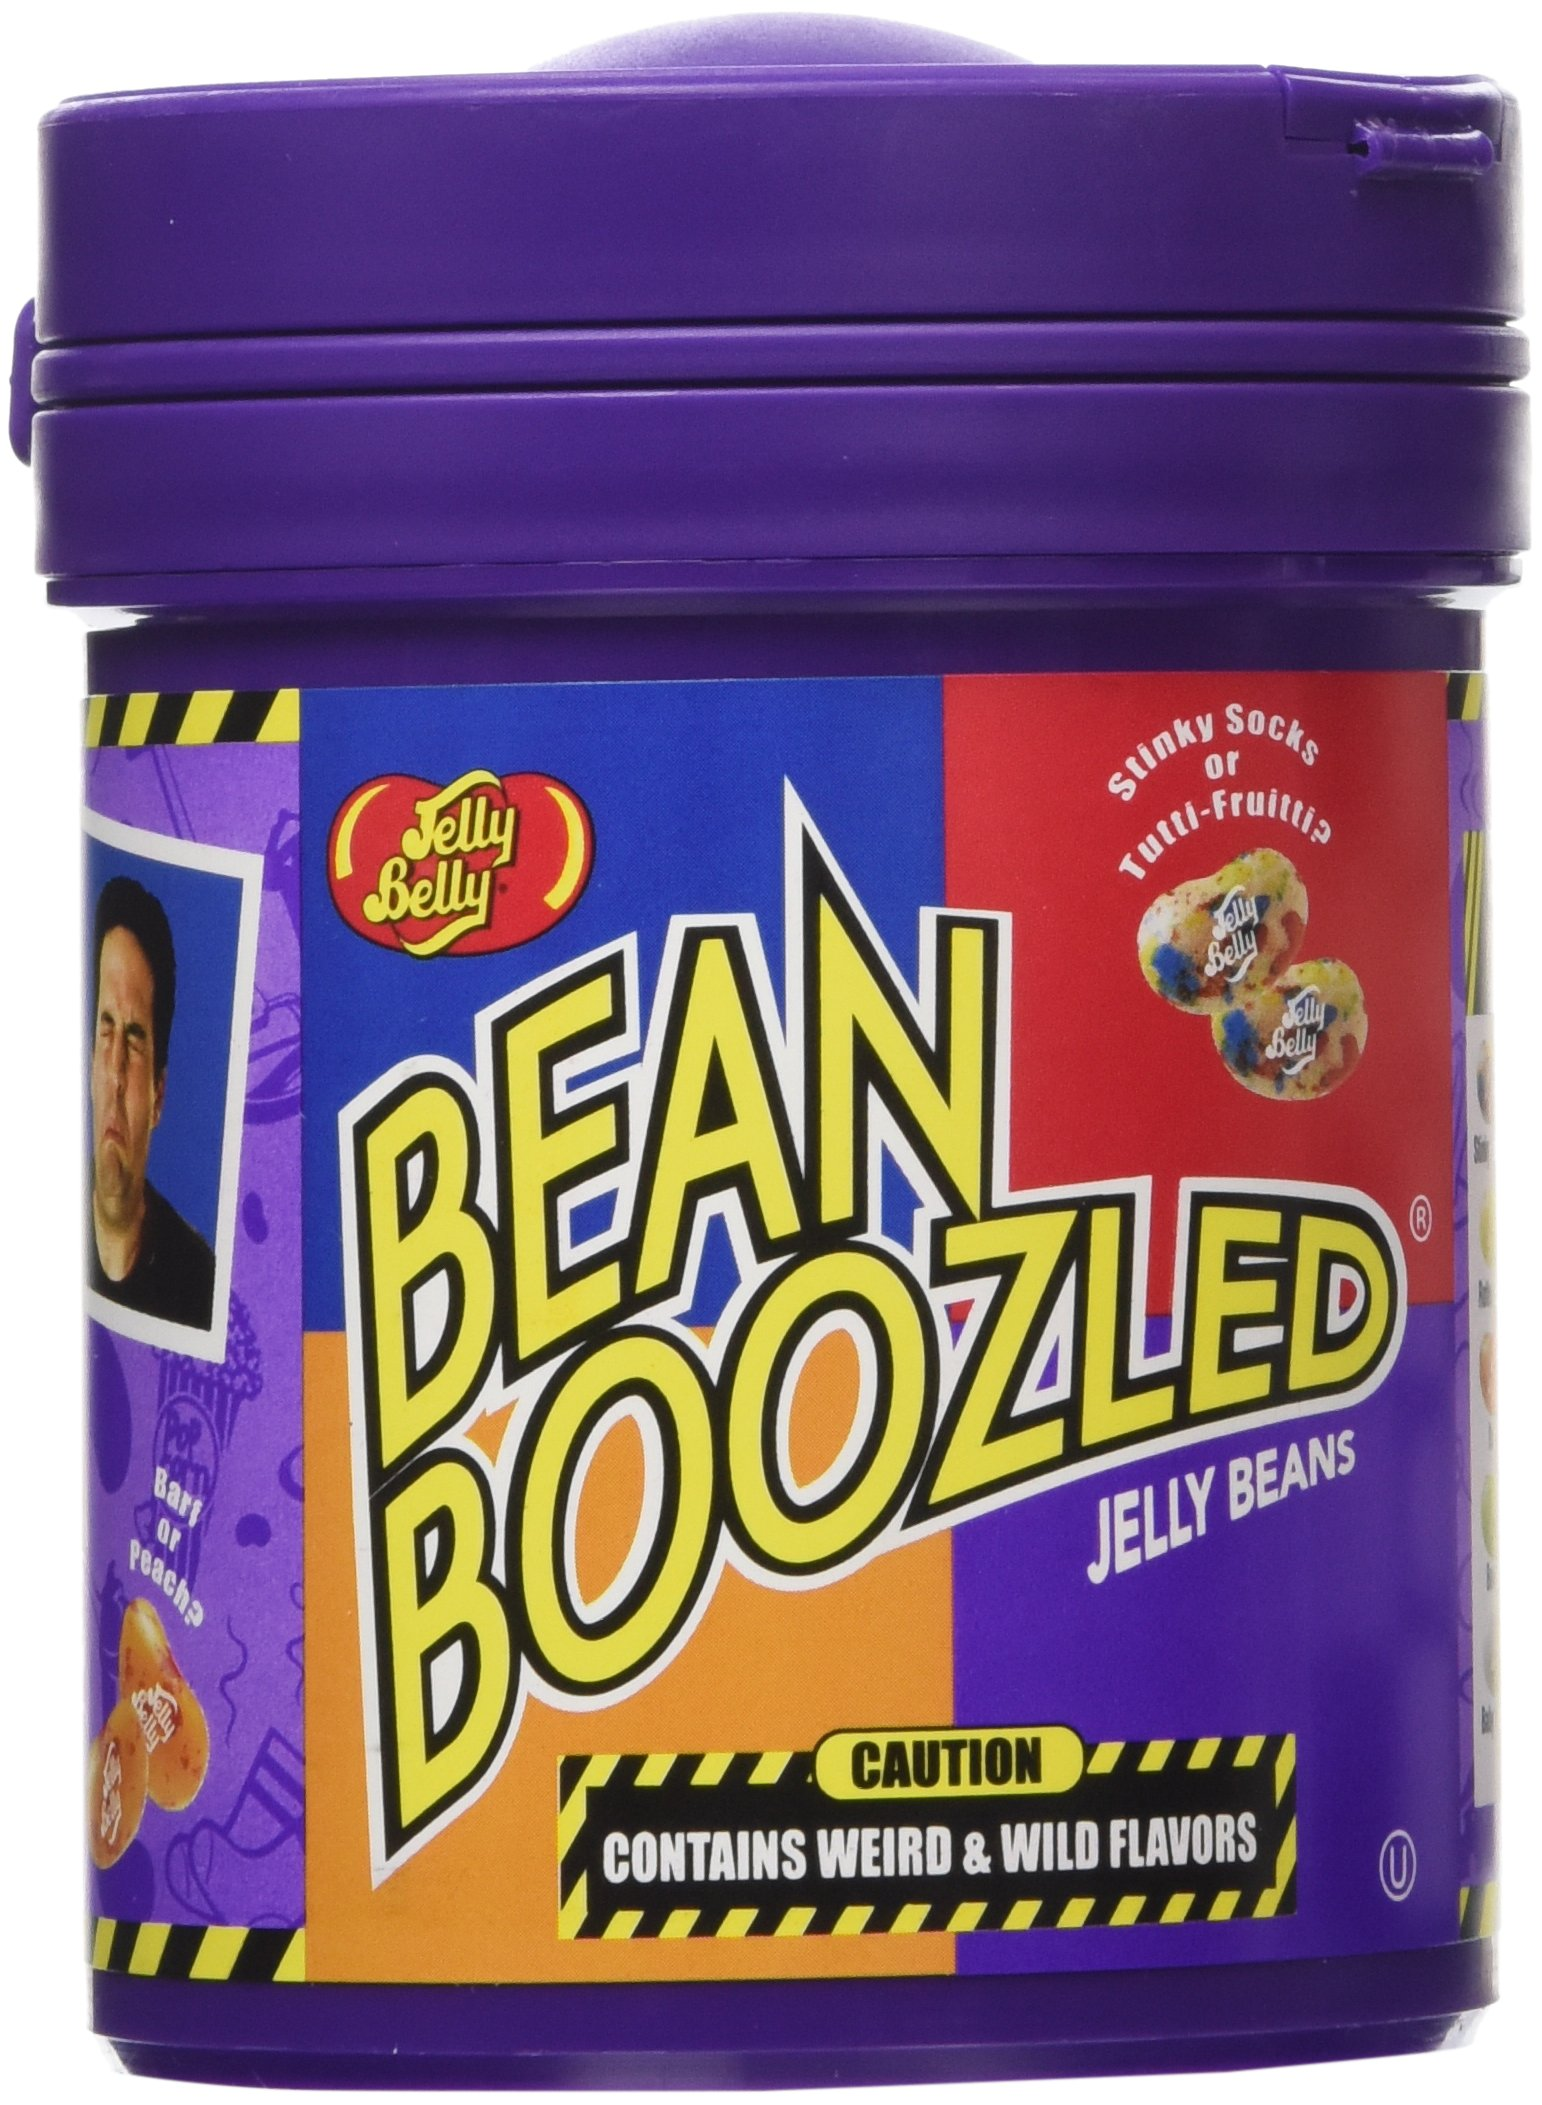 Jelly Belly 63965 3.5 Oz. Beanboozled Mystery Bean Dispenser (Pack of 12) by Jelly Belly (Image #1)